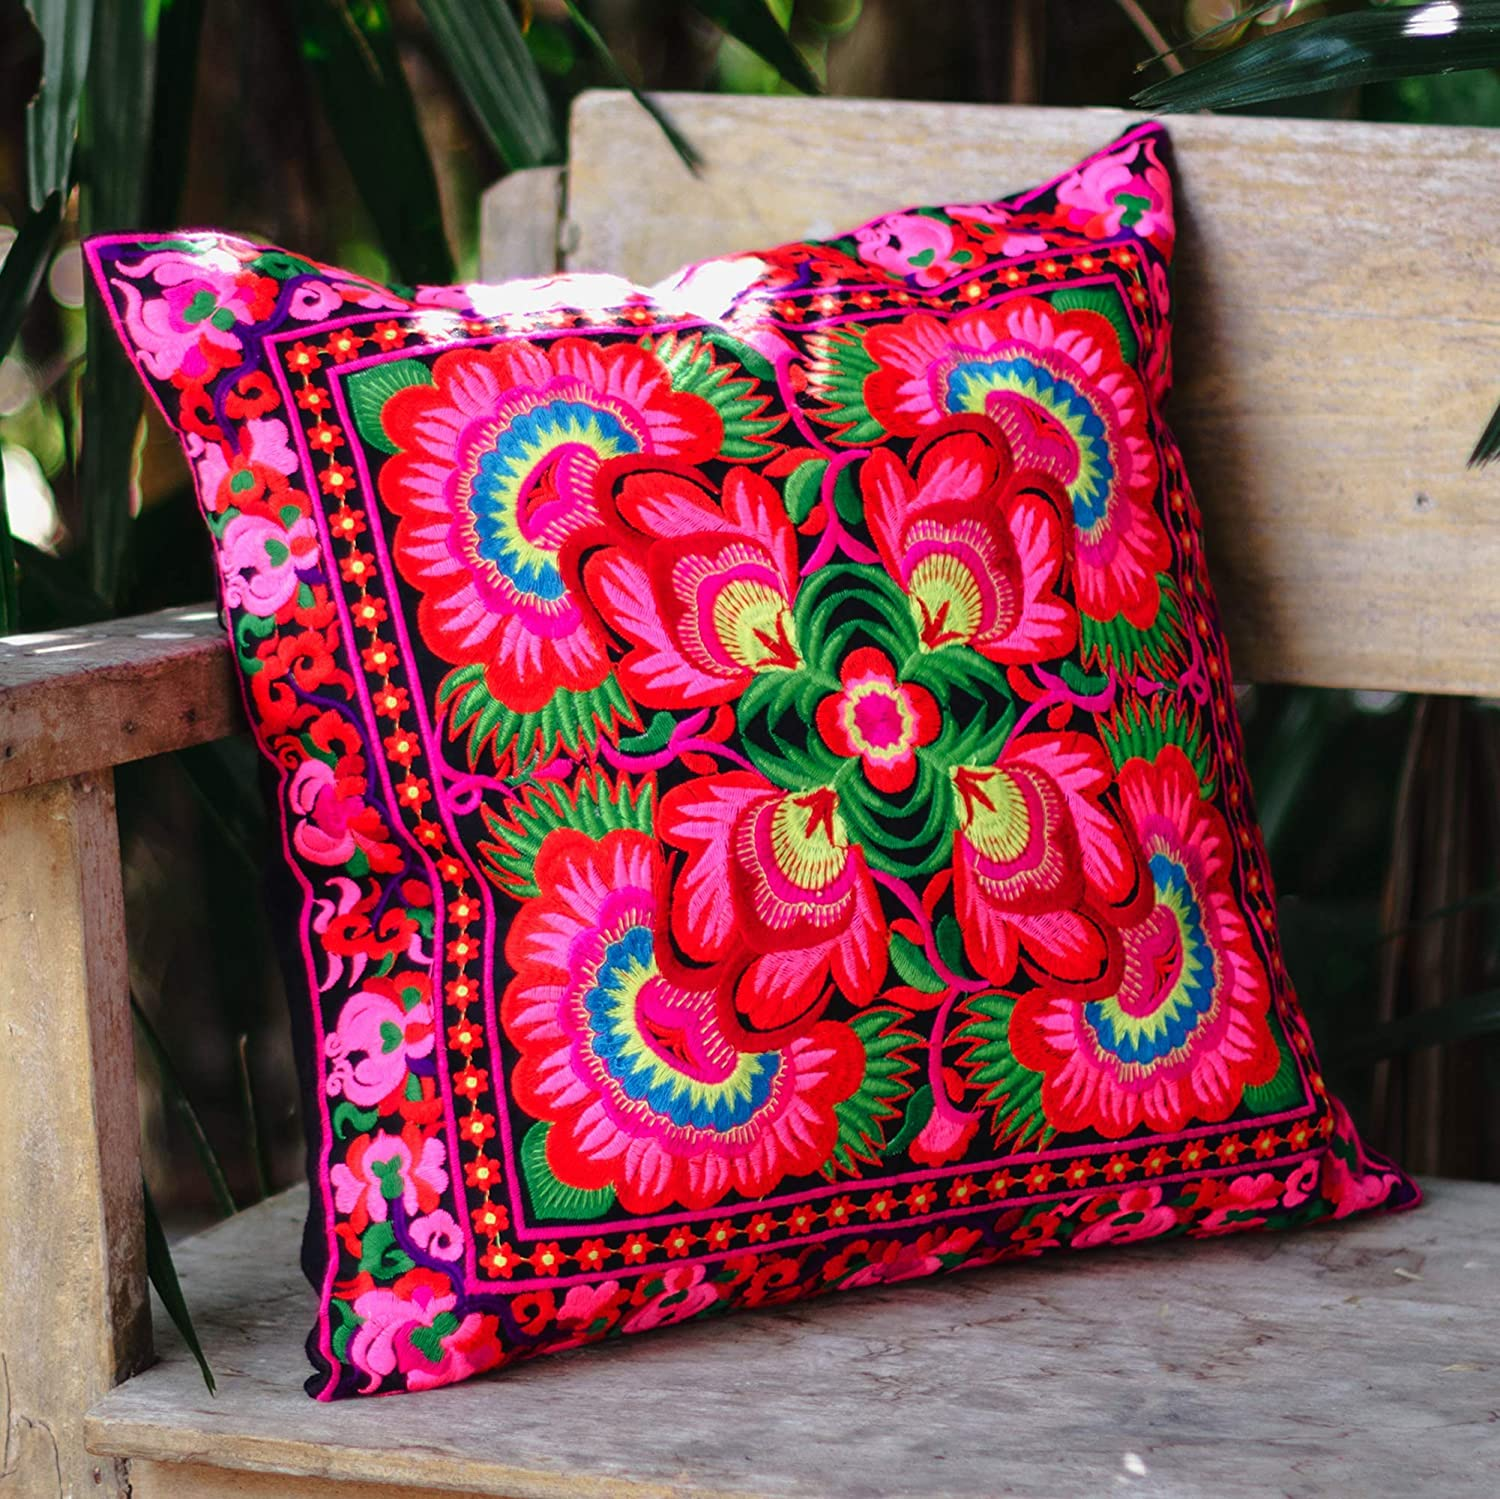 Flower Tropical Pillow Sofa Pillows Tribal Pillow Cover Changnoi Handcrafted Fair Trade Pillow Cover with Hmong Hill Tribe Embroidered